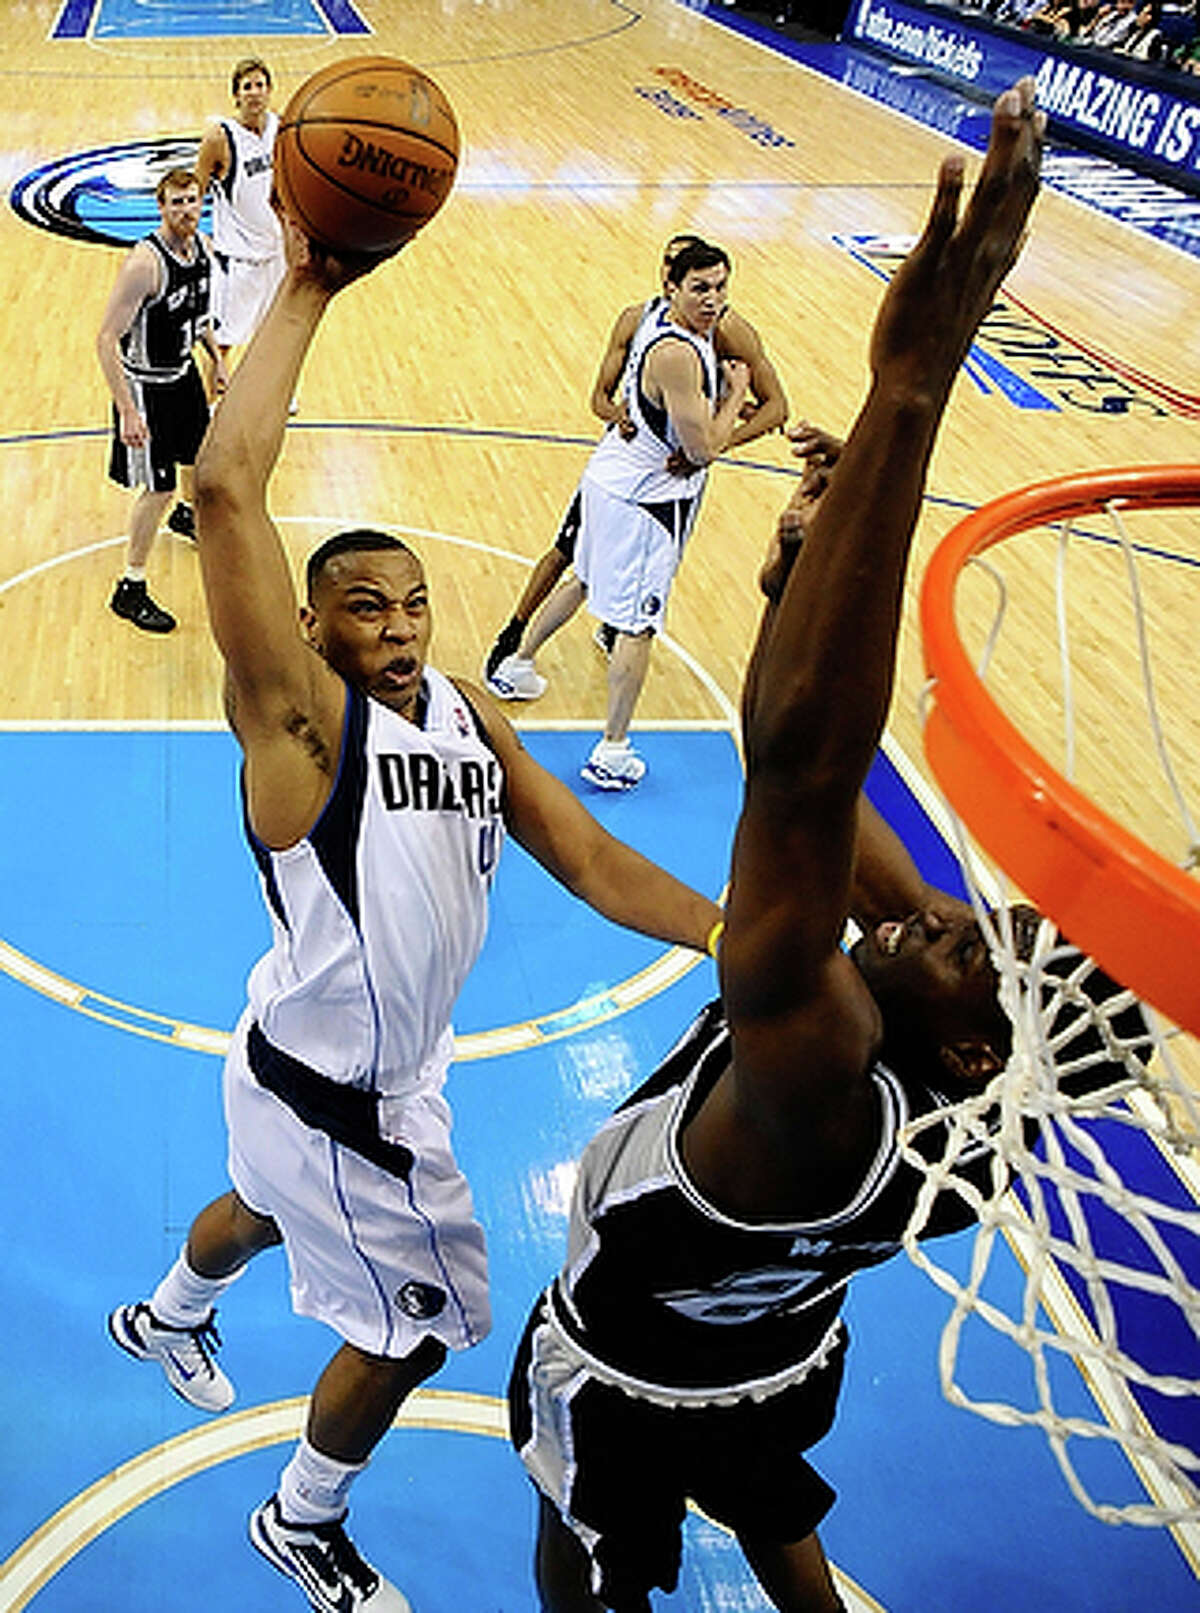 Free-agent forward Caron Butler and his agent met with Spurs officials Wednesday.